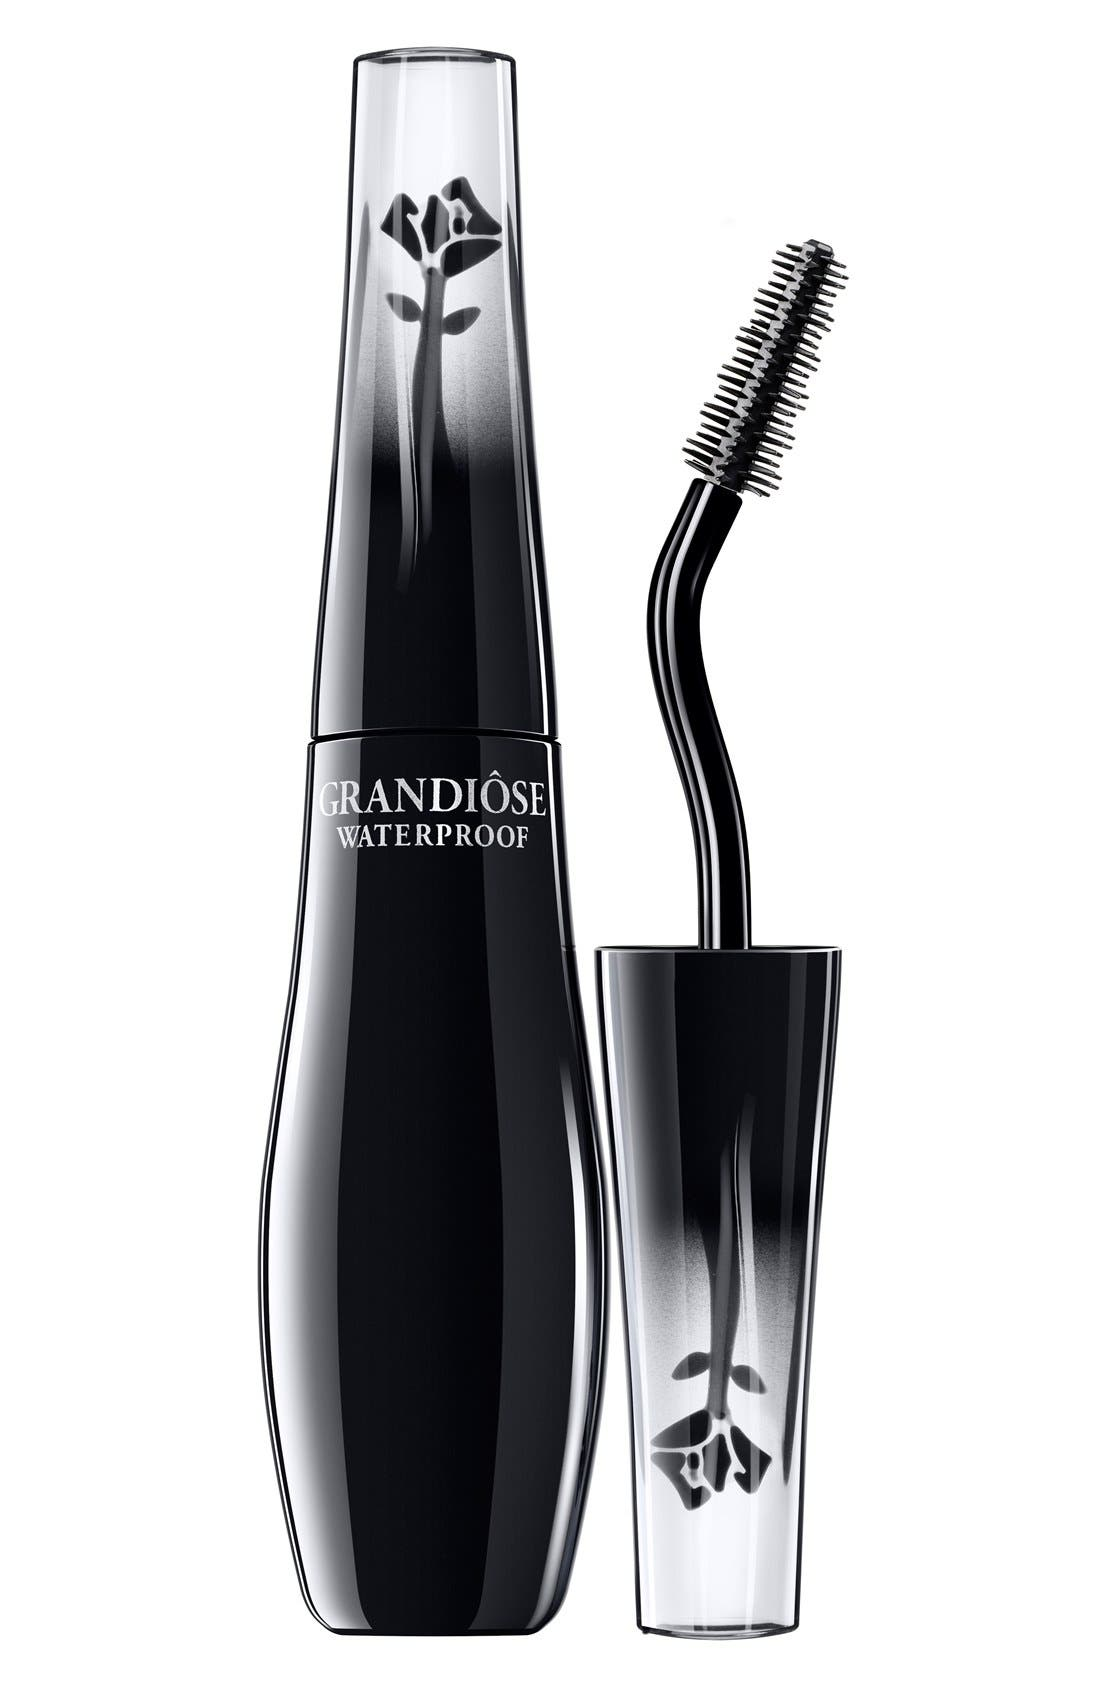 Lancôme Grandiose Multi-Benefit Lengthening, Lifting and Volumizing Waterproof Mascara